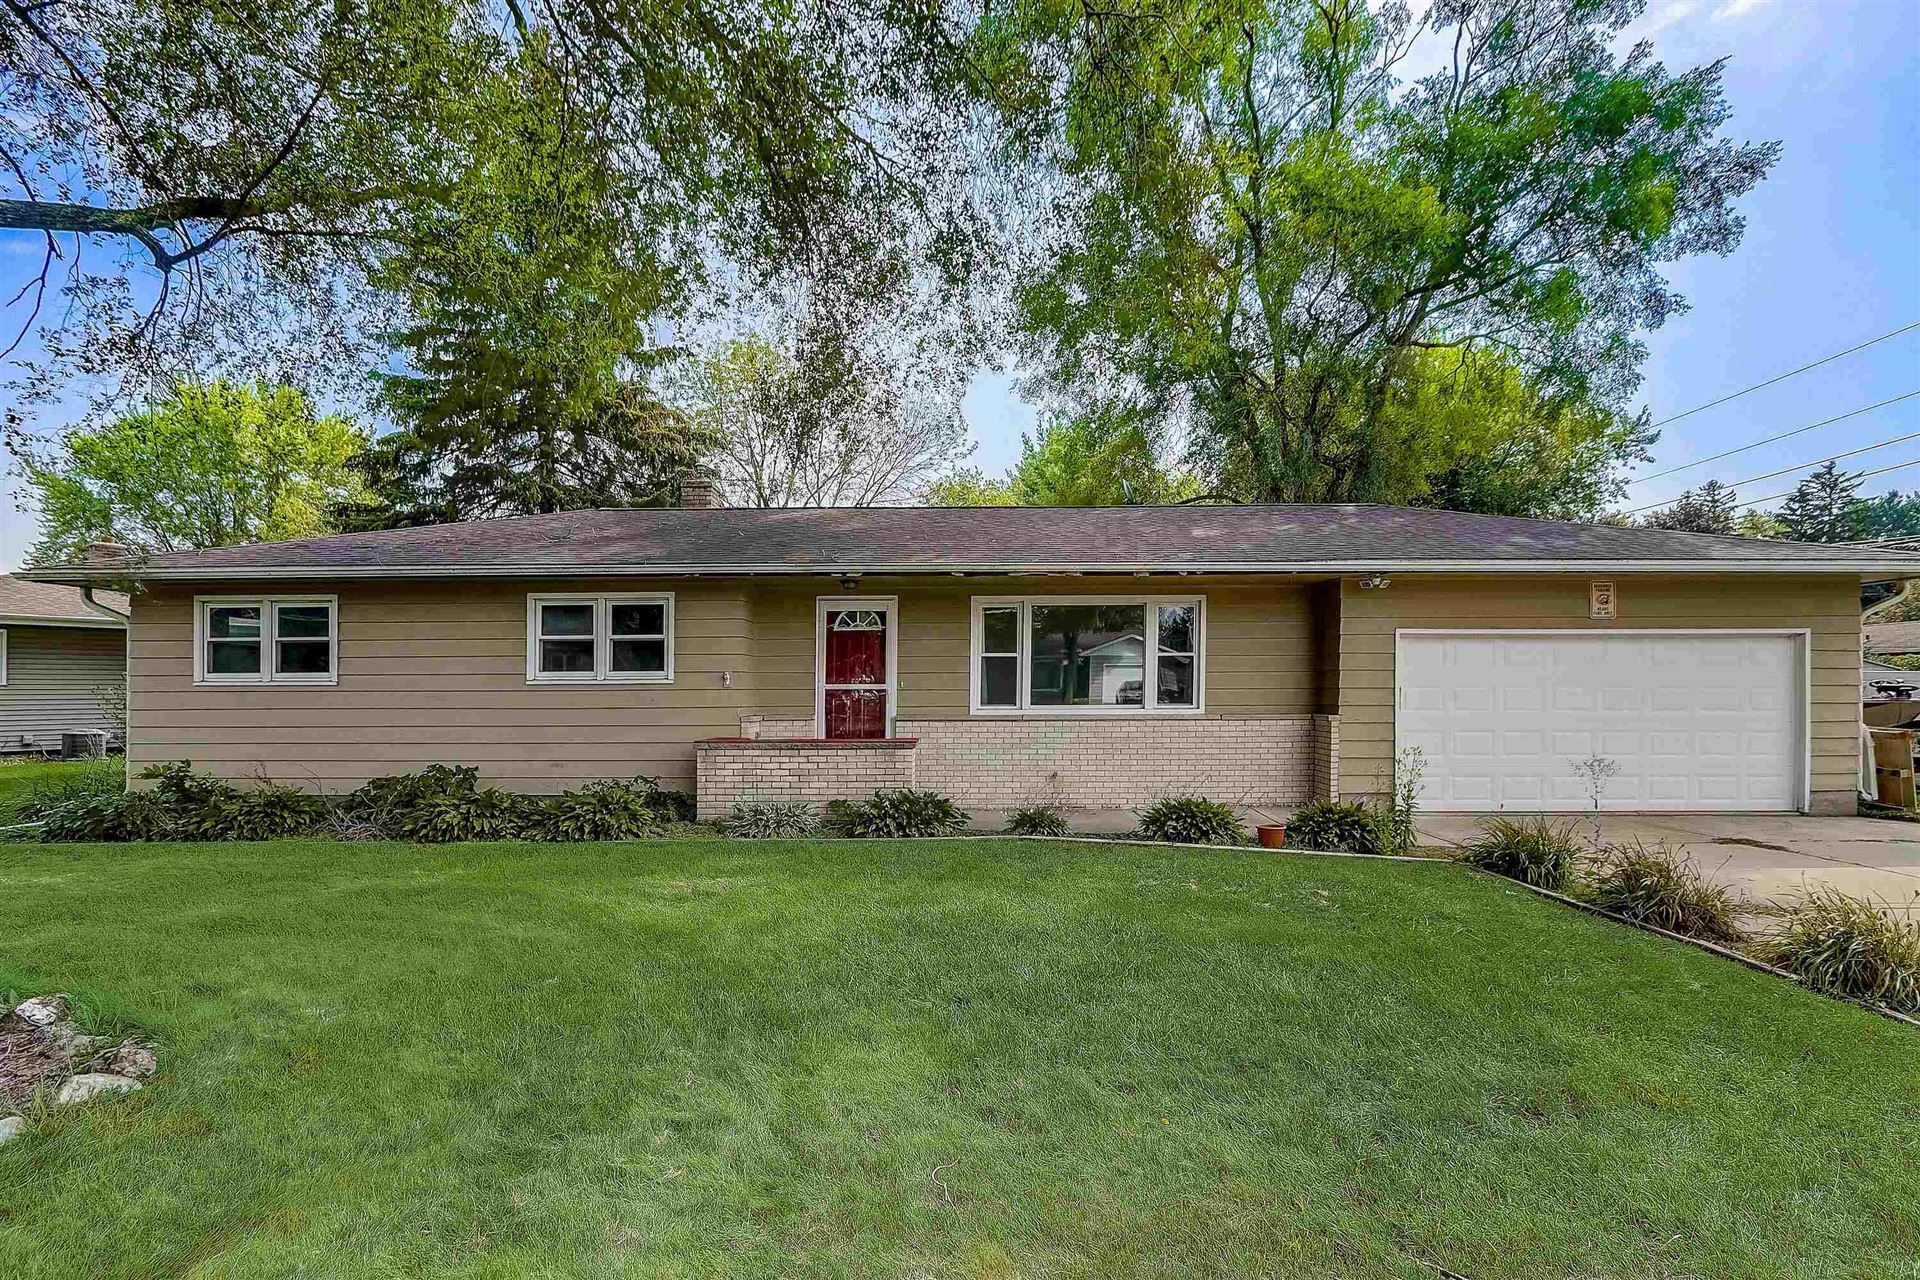 6742 Sunset Meadow Dr, Windsor, WI 53598 - #: 1918324